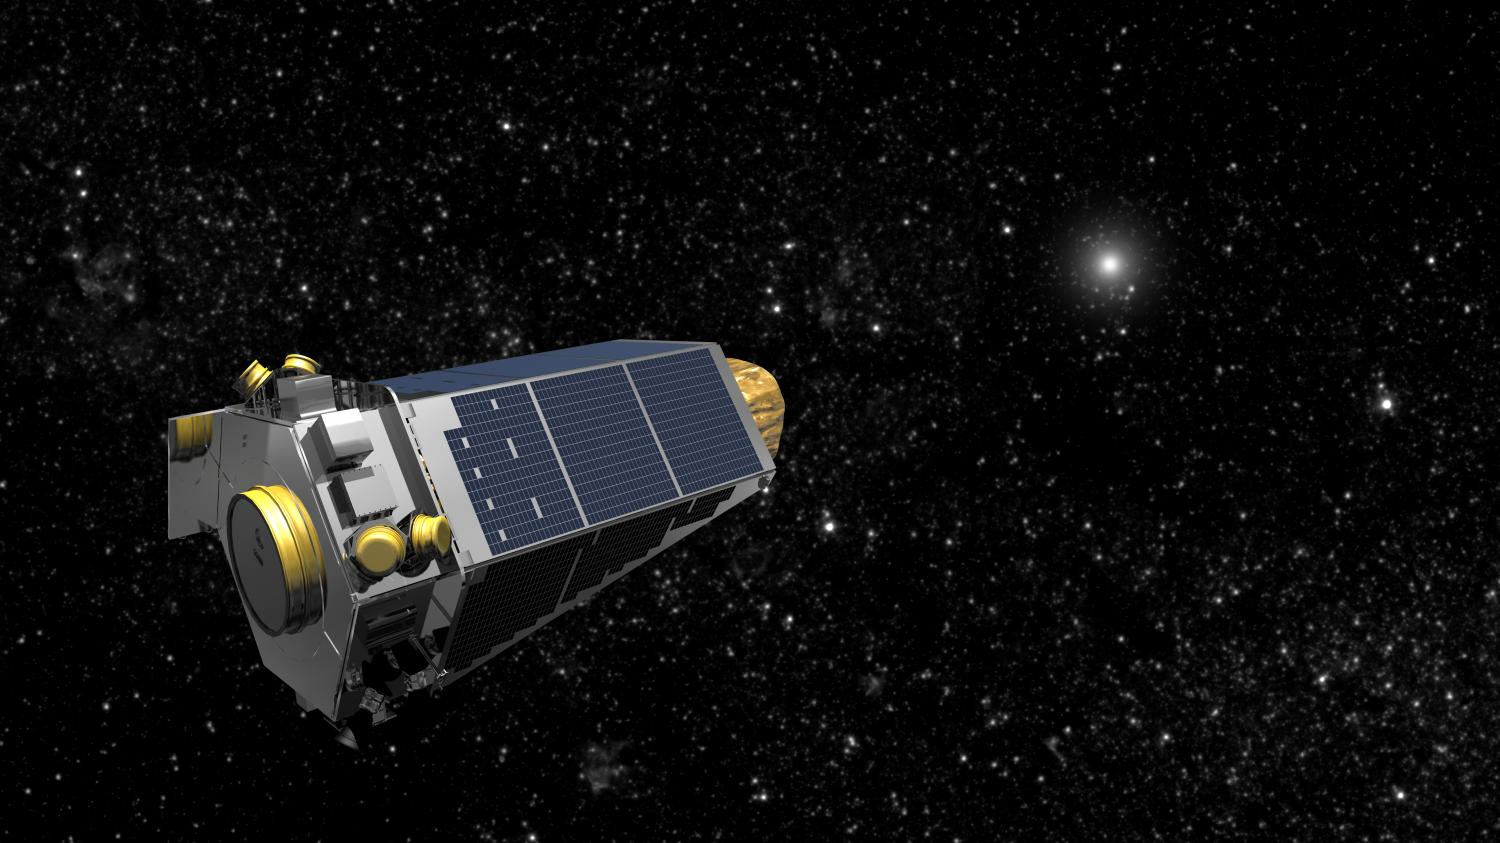 NASA Kepler Spacecraft is Low On Fuel and Close to Death